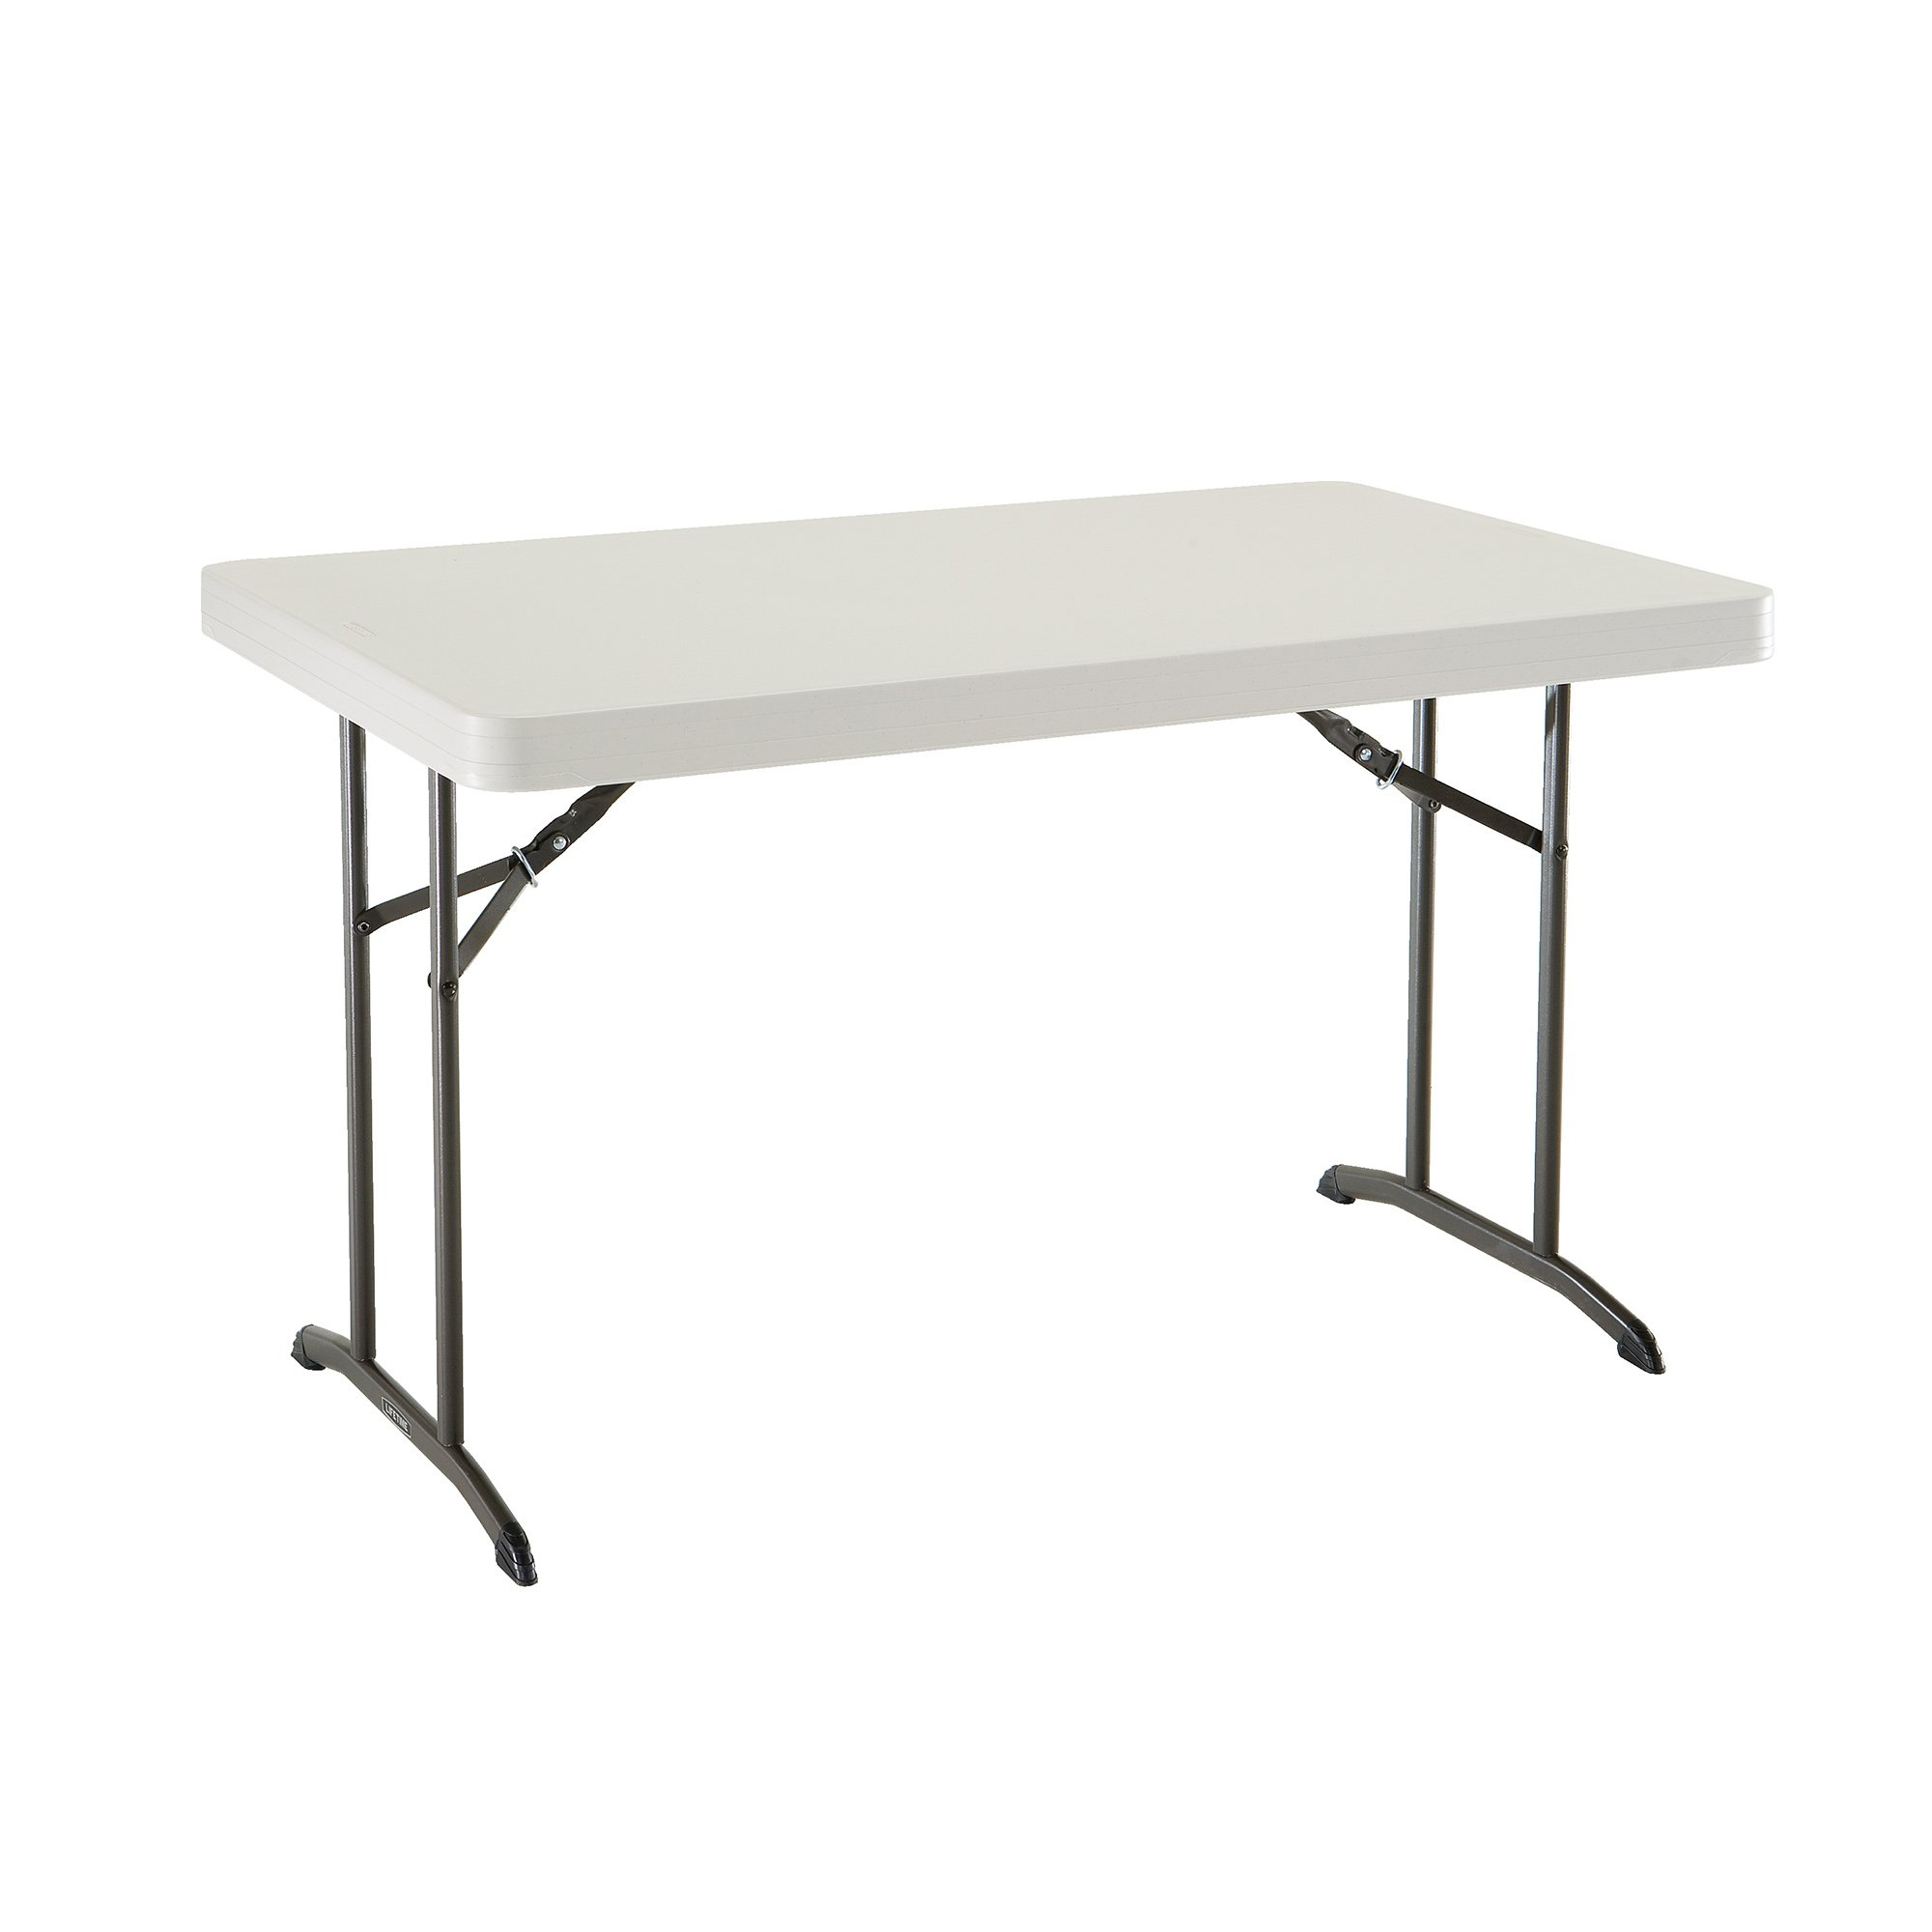 Lifetime 80568 48'' x 30'' Wide Folding Utility Table by Lifetime